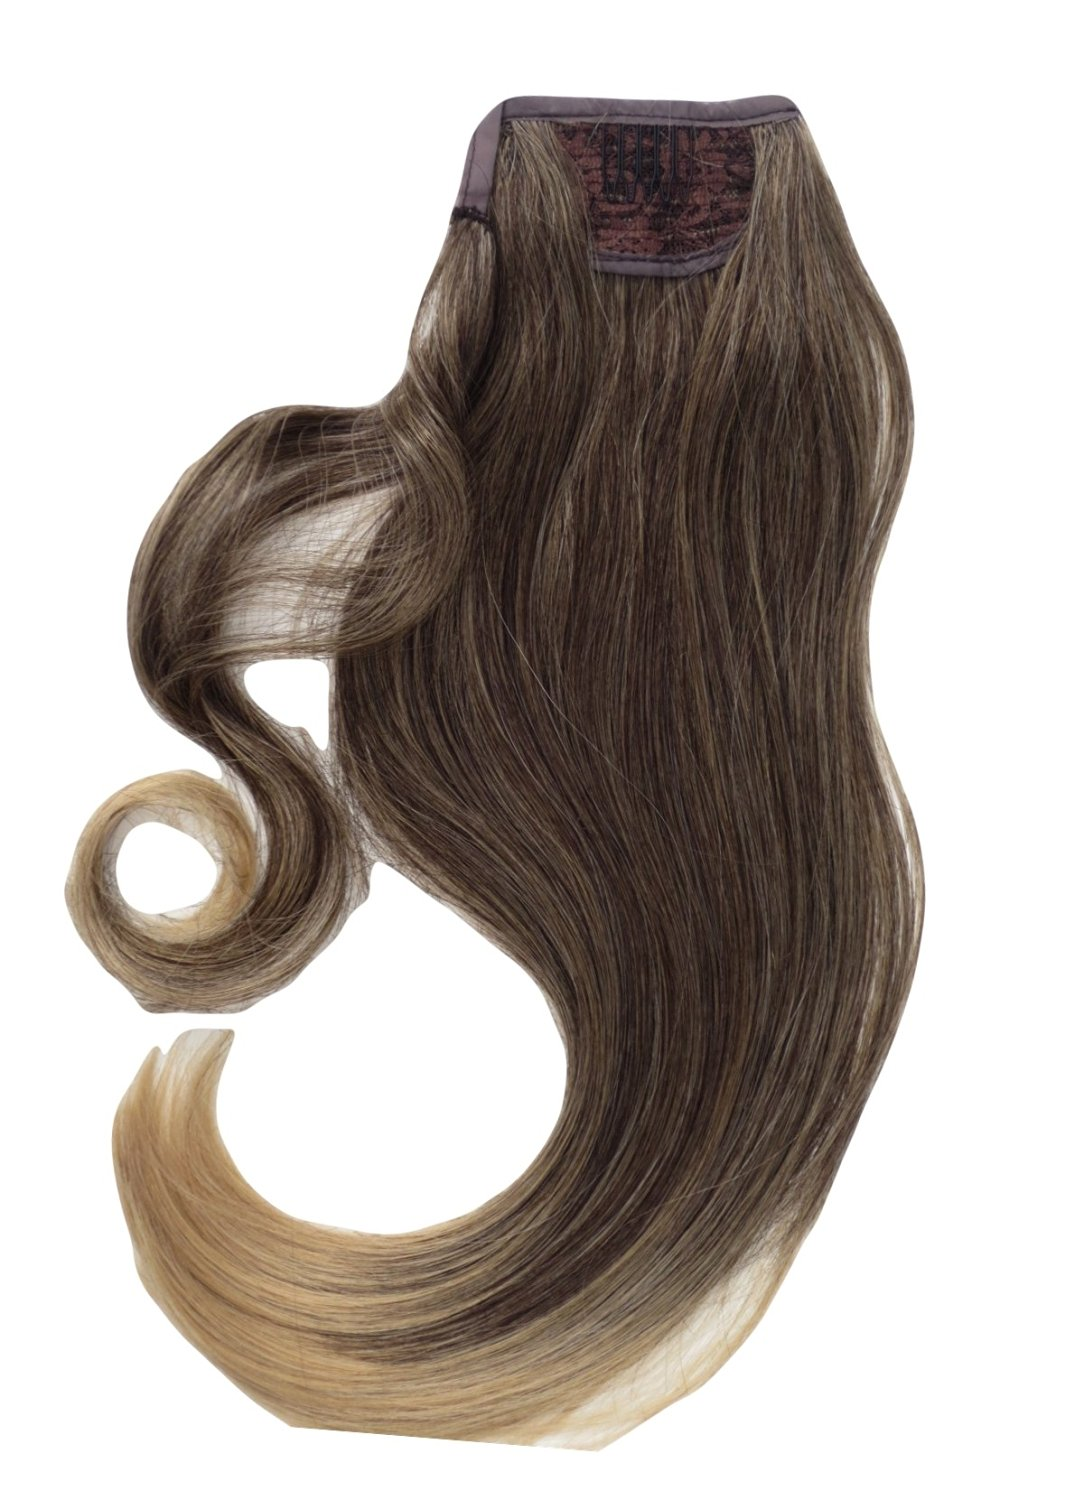 Buy Pony Tail Switch Hair Extension Wrap Around Tail Hides Grips